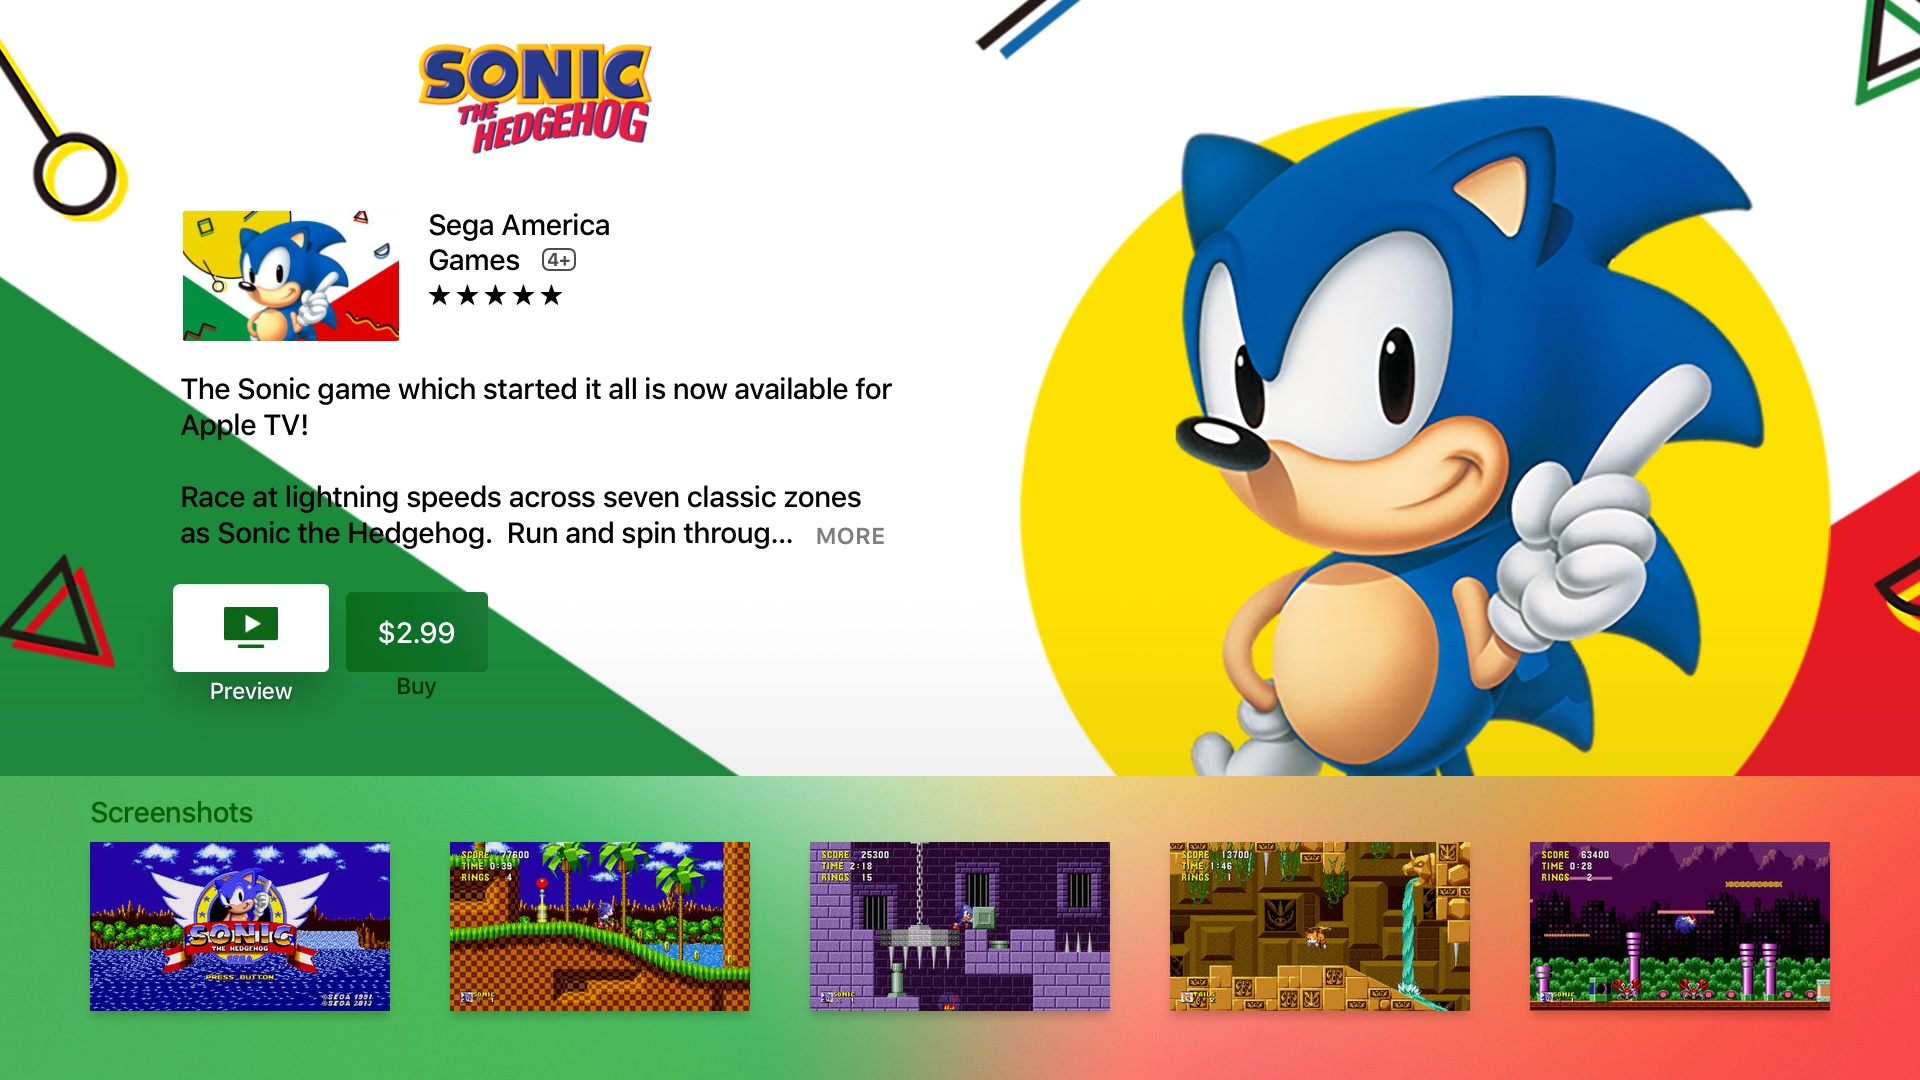 Sonic the Hedgehog for Apple TV screenshot 001